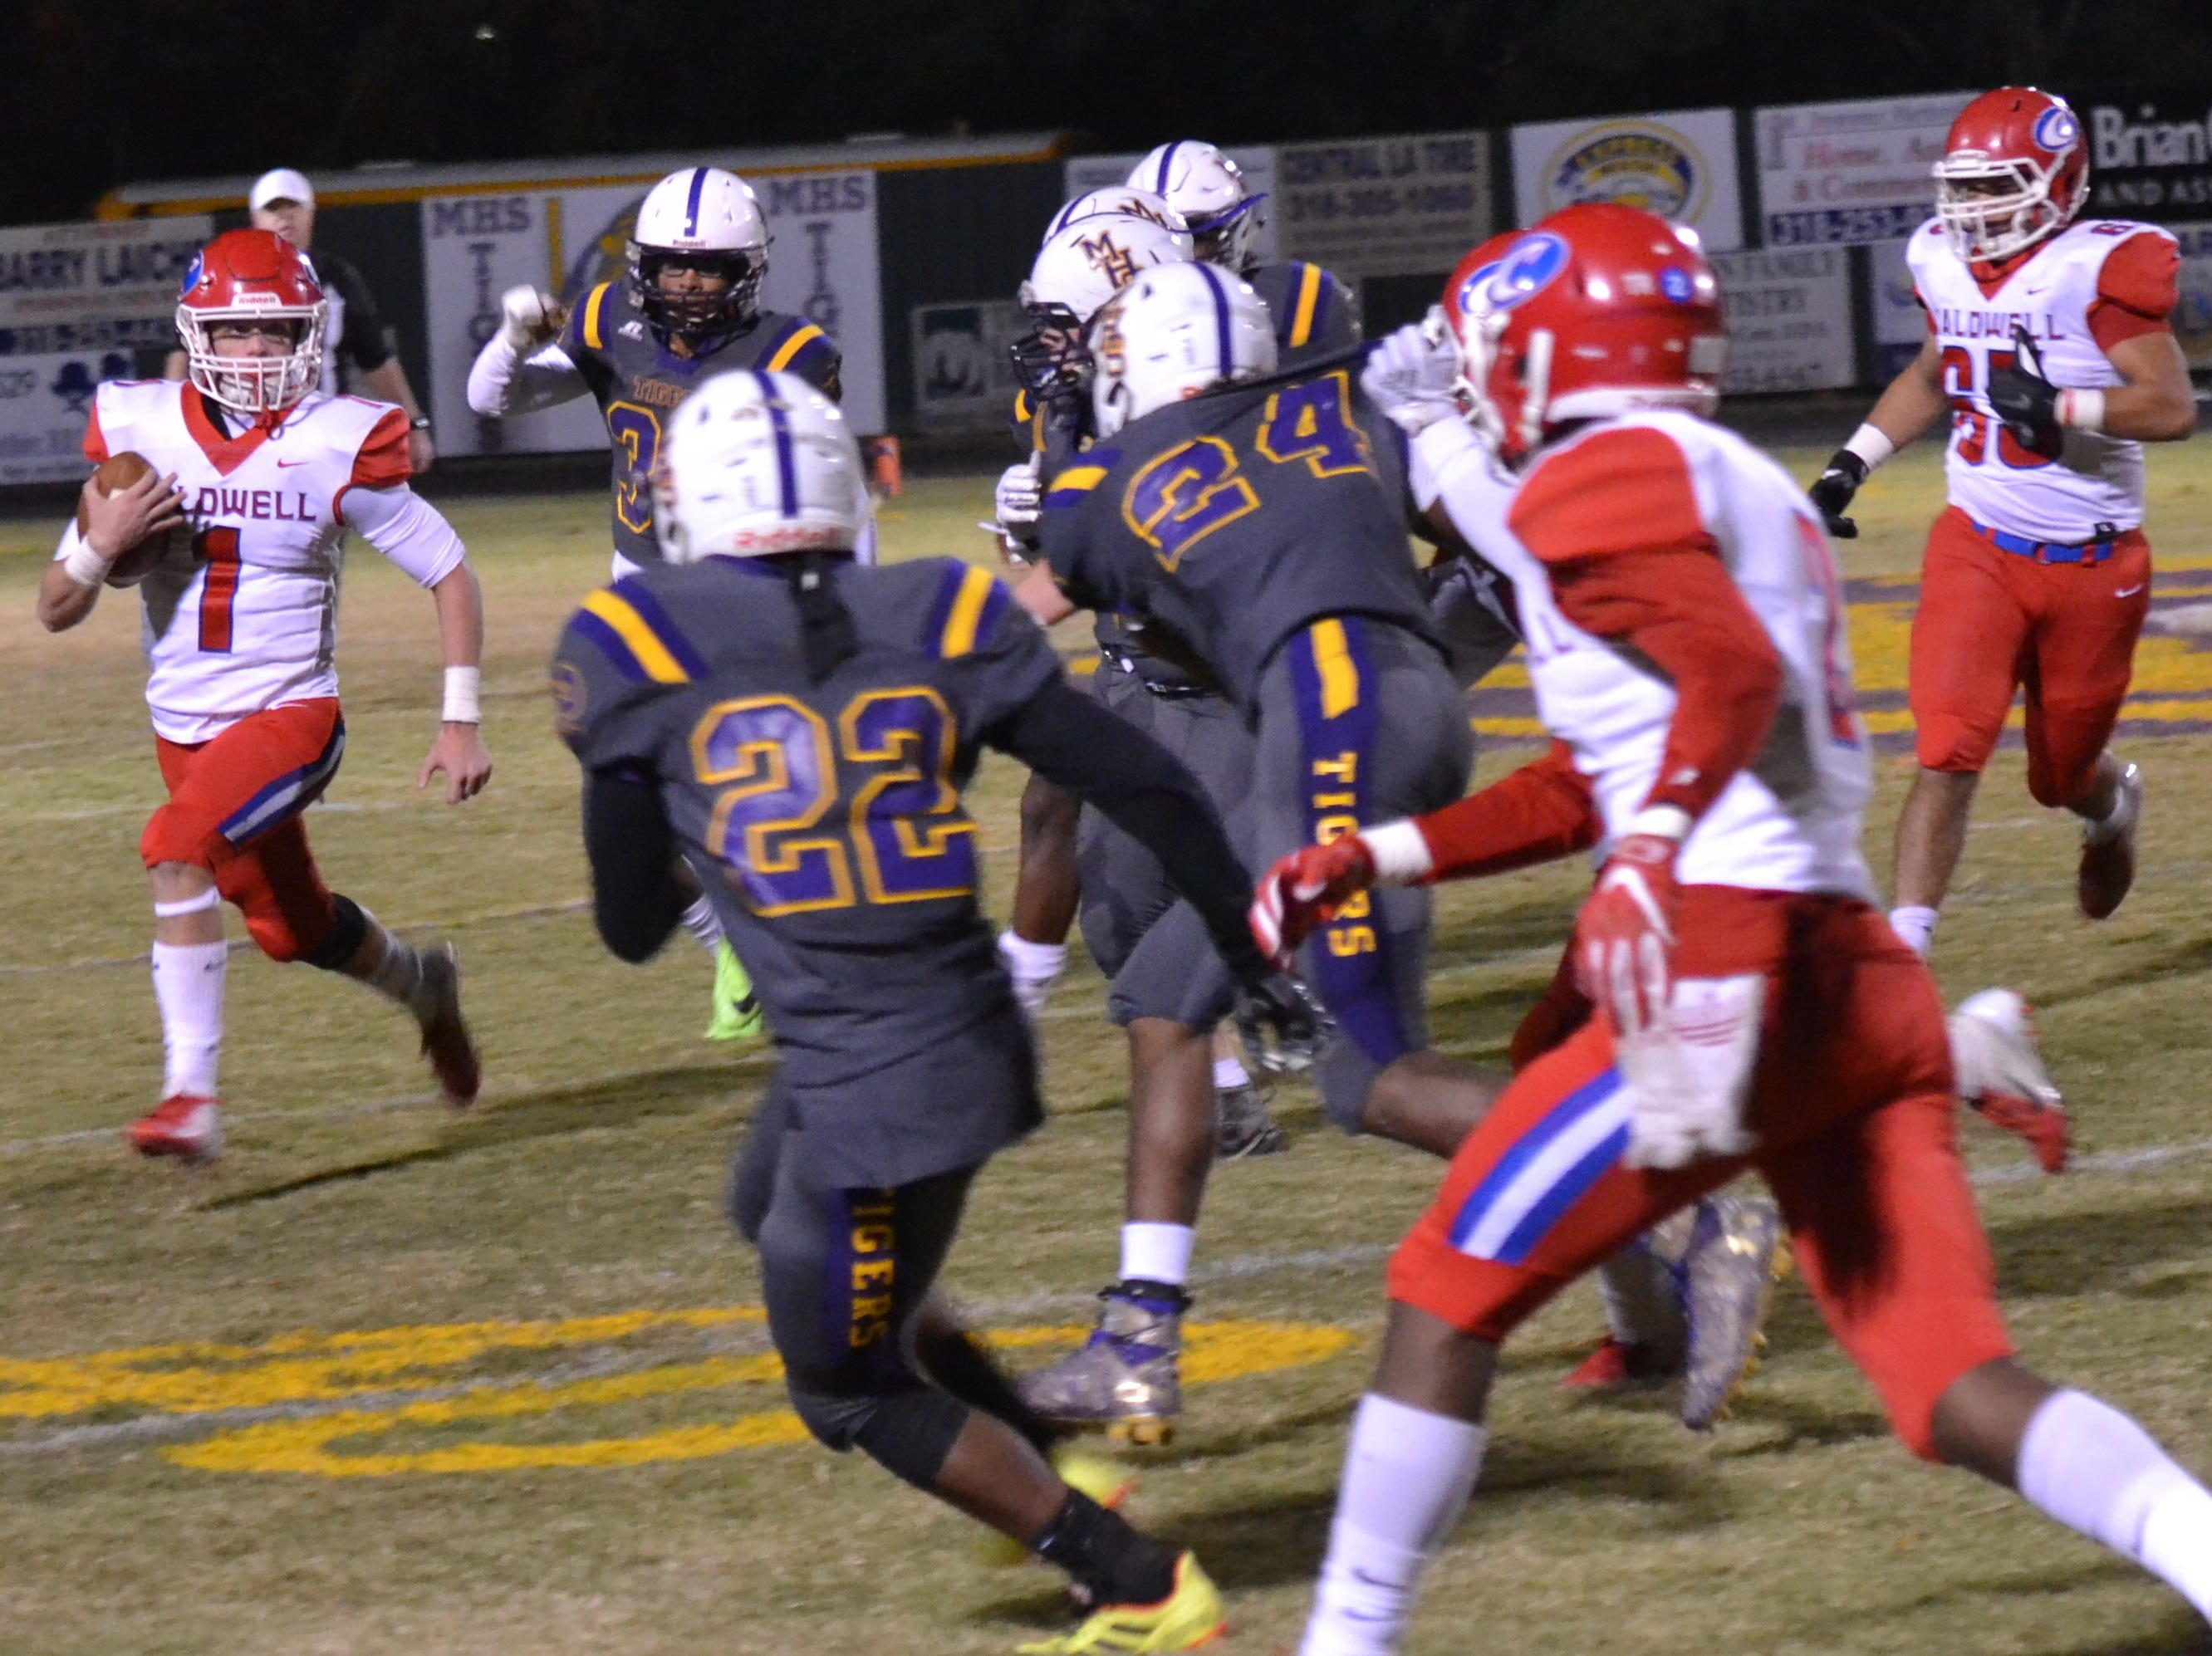 Marksville defenders surround and close in on Caldwell runner Jaron Townsend (1). Marksville and Caldwell met in the regular season finale Friday night with Caldwell edging Marksville 13-8.